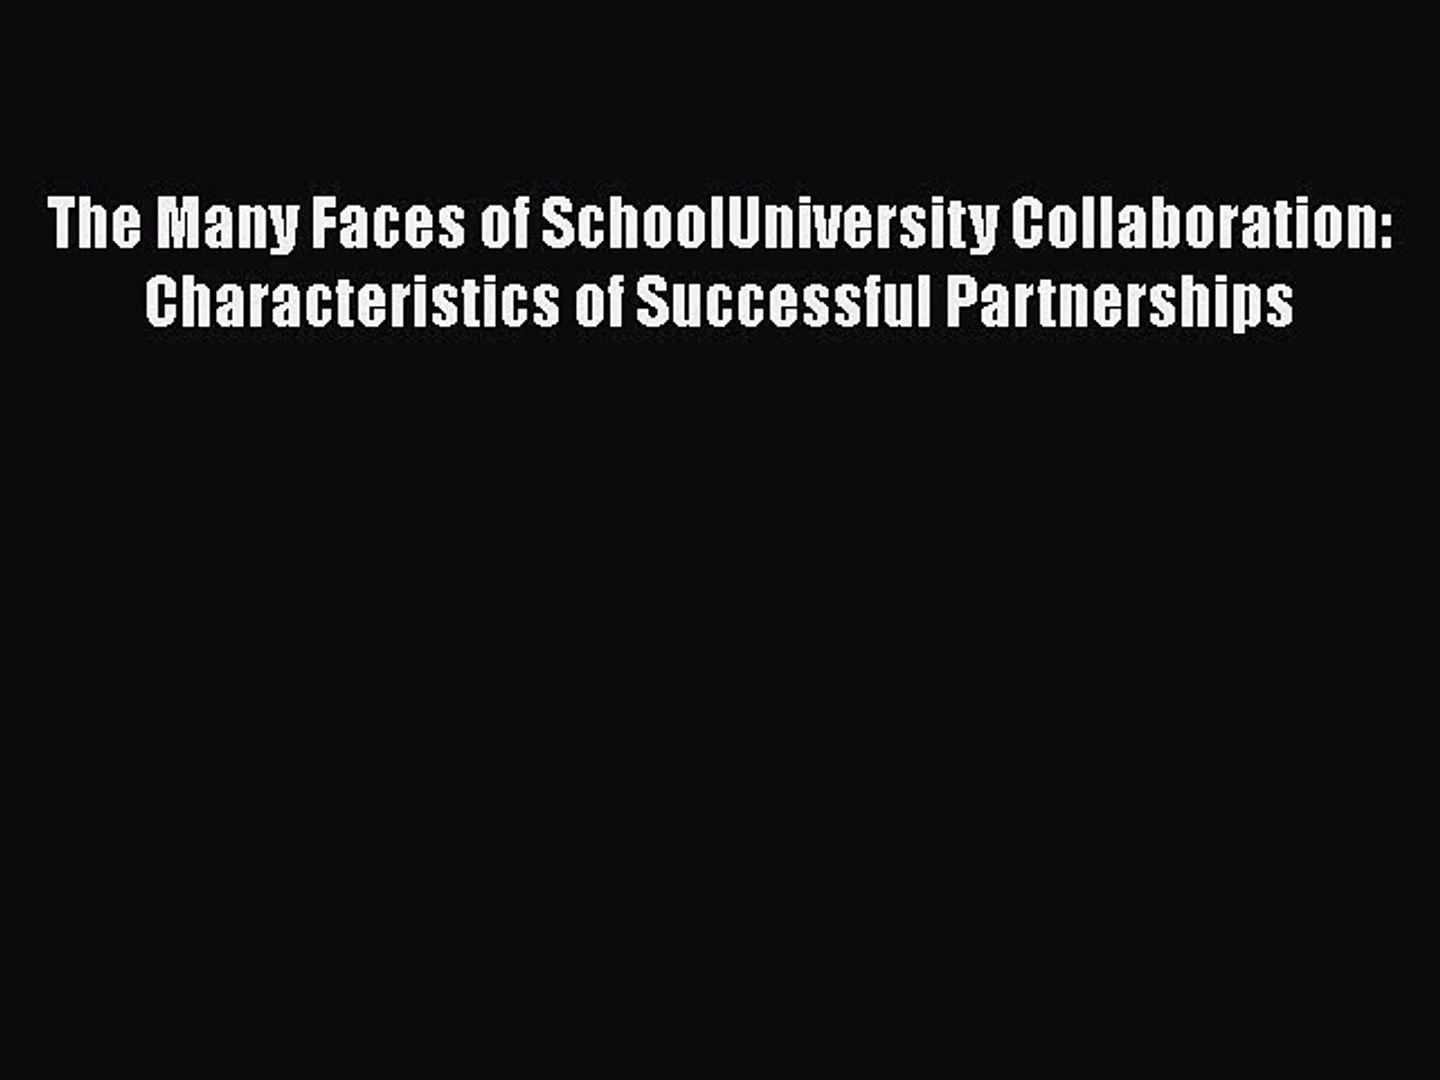 [Read book] The Many Faces of SchoolUniversity Collaboration: Characteristics of Successful